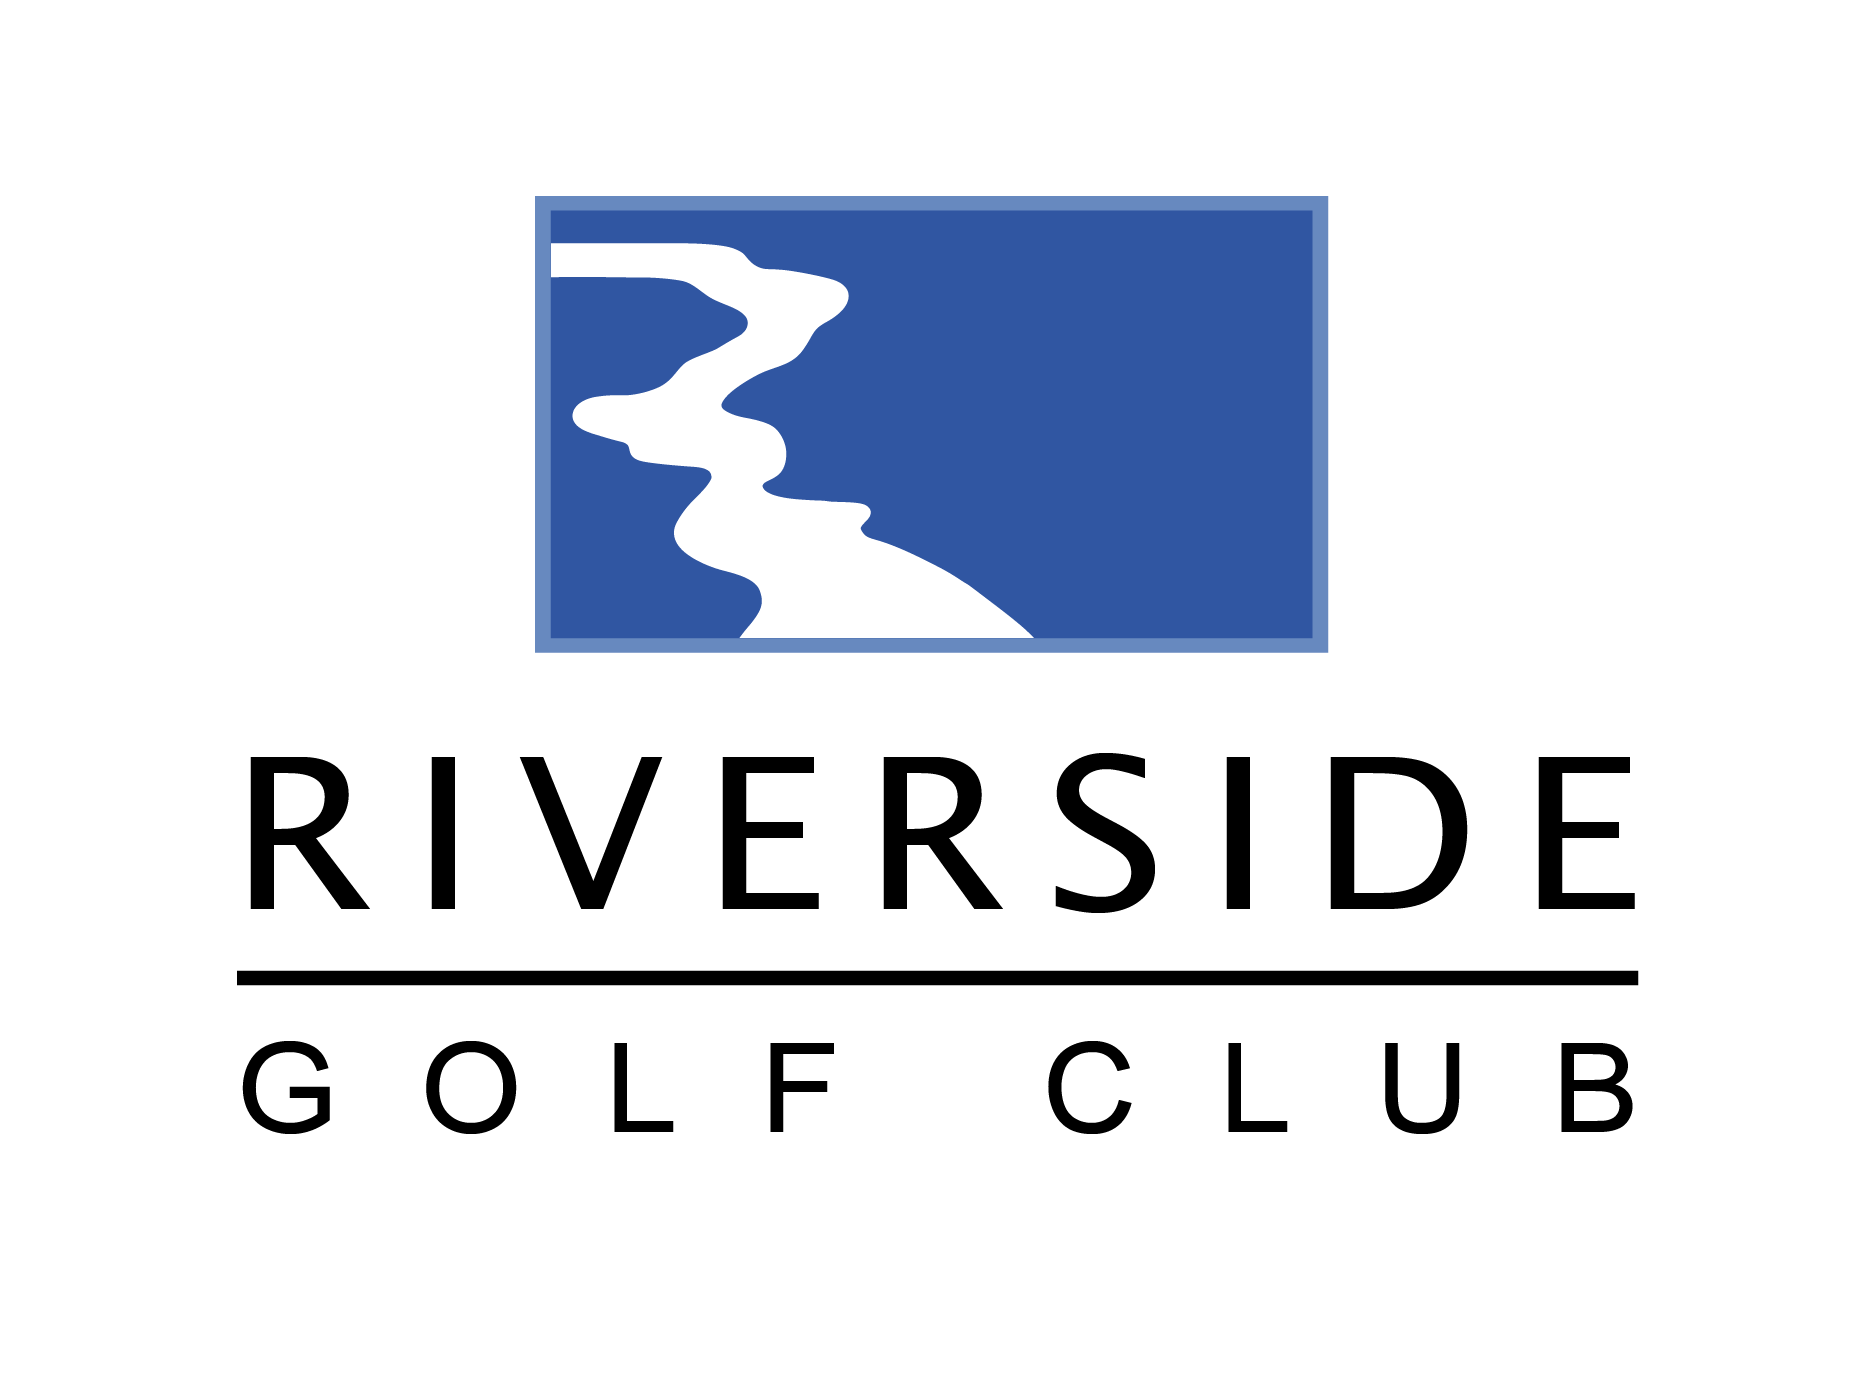 Riverside Golf Club logo